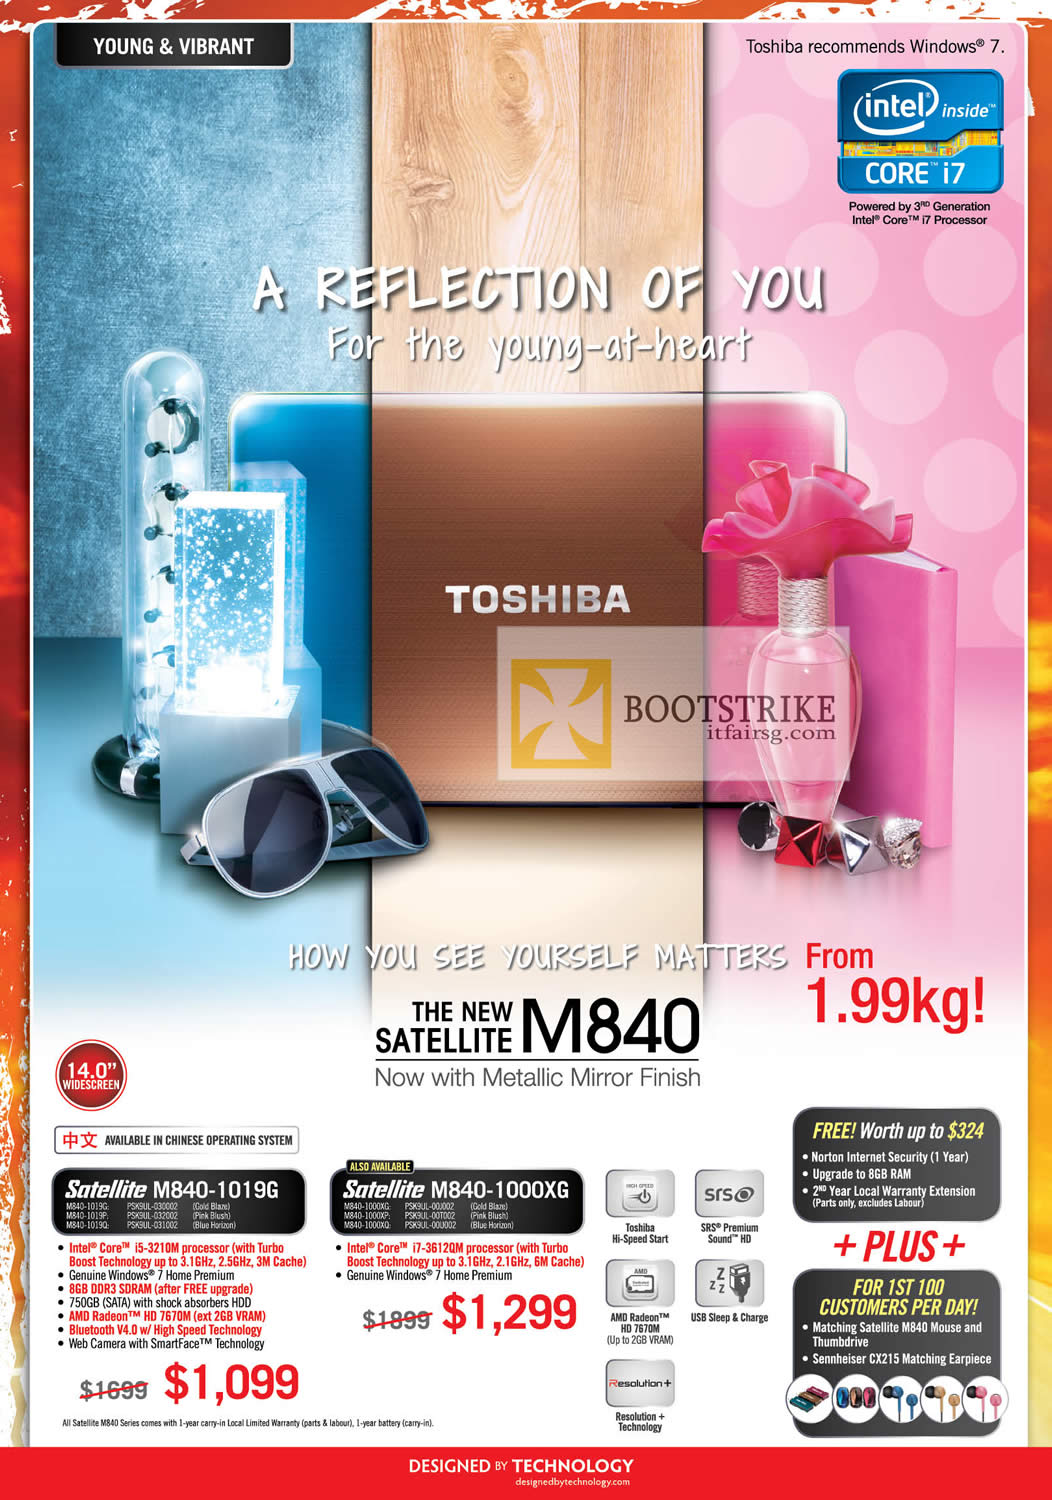 COMEX 2012 price list image brochure of Toshiba Notebooks Satellite M840-1019G, M840-1000XG